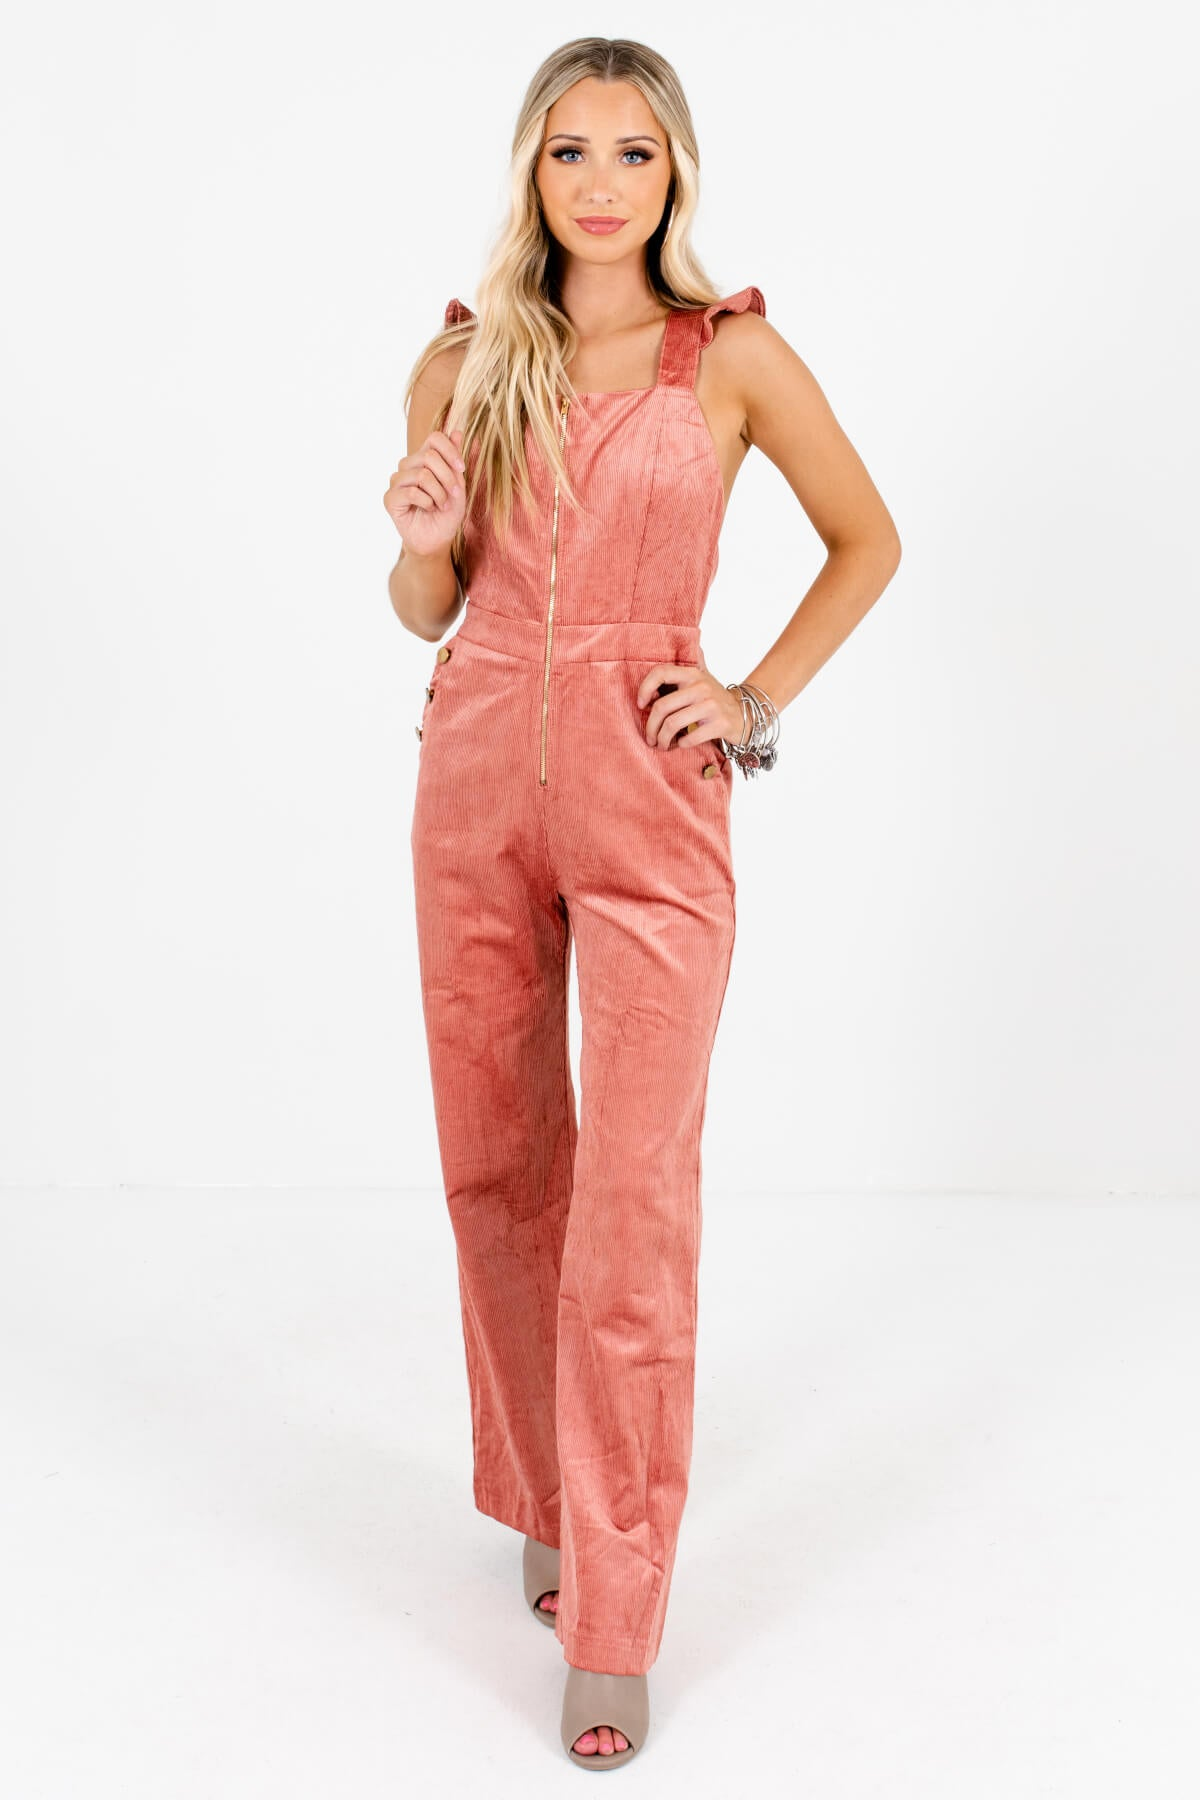 Pink High-Quality Corduroy Material Boutique Jumpsuits for Women